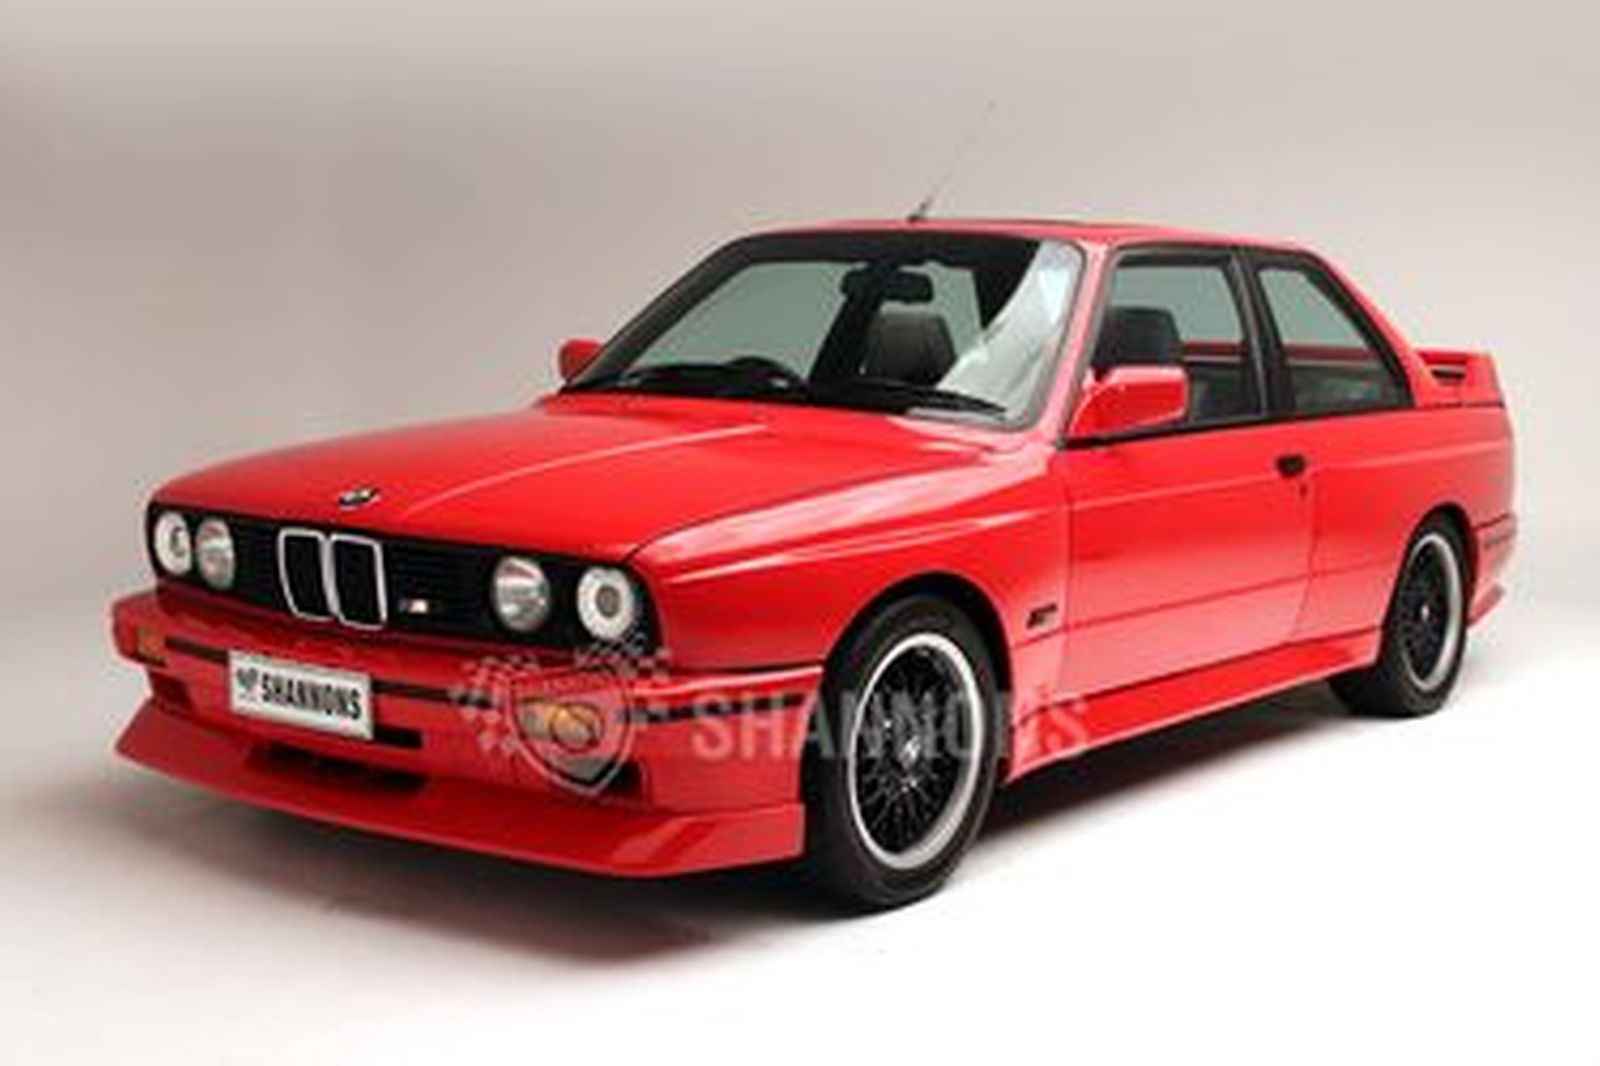 bmw e30 m3 evolution ii coupe rhd auctions lot 62. Black Bedroom Furniture Sets. Home Design Ideas